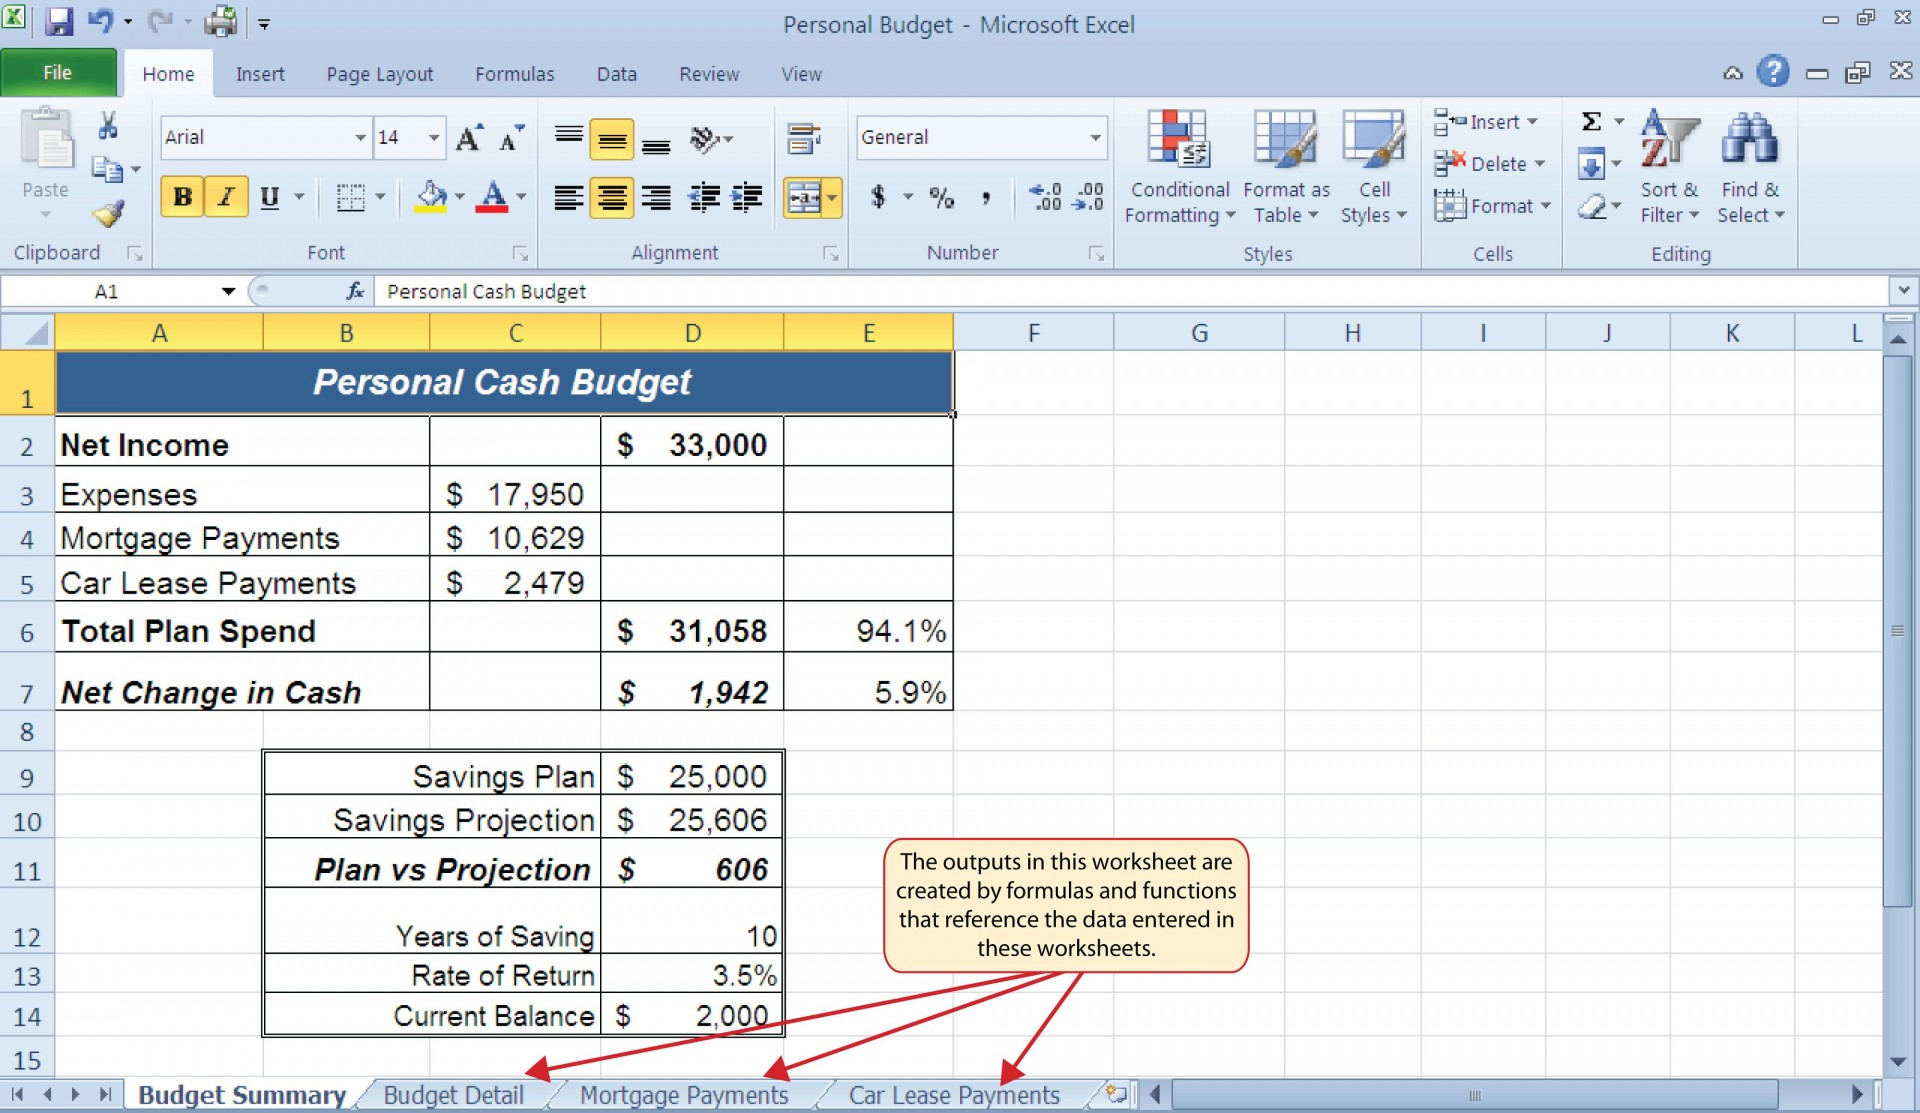 002 Staggering Simple Excel Budget Template High Resolution  Personal South Africa Household Free1920